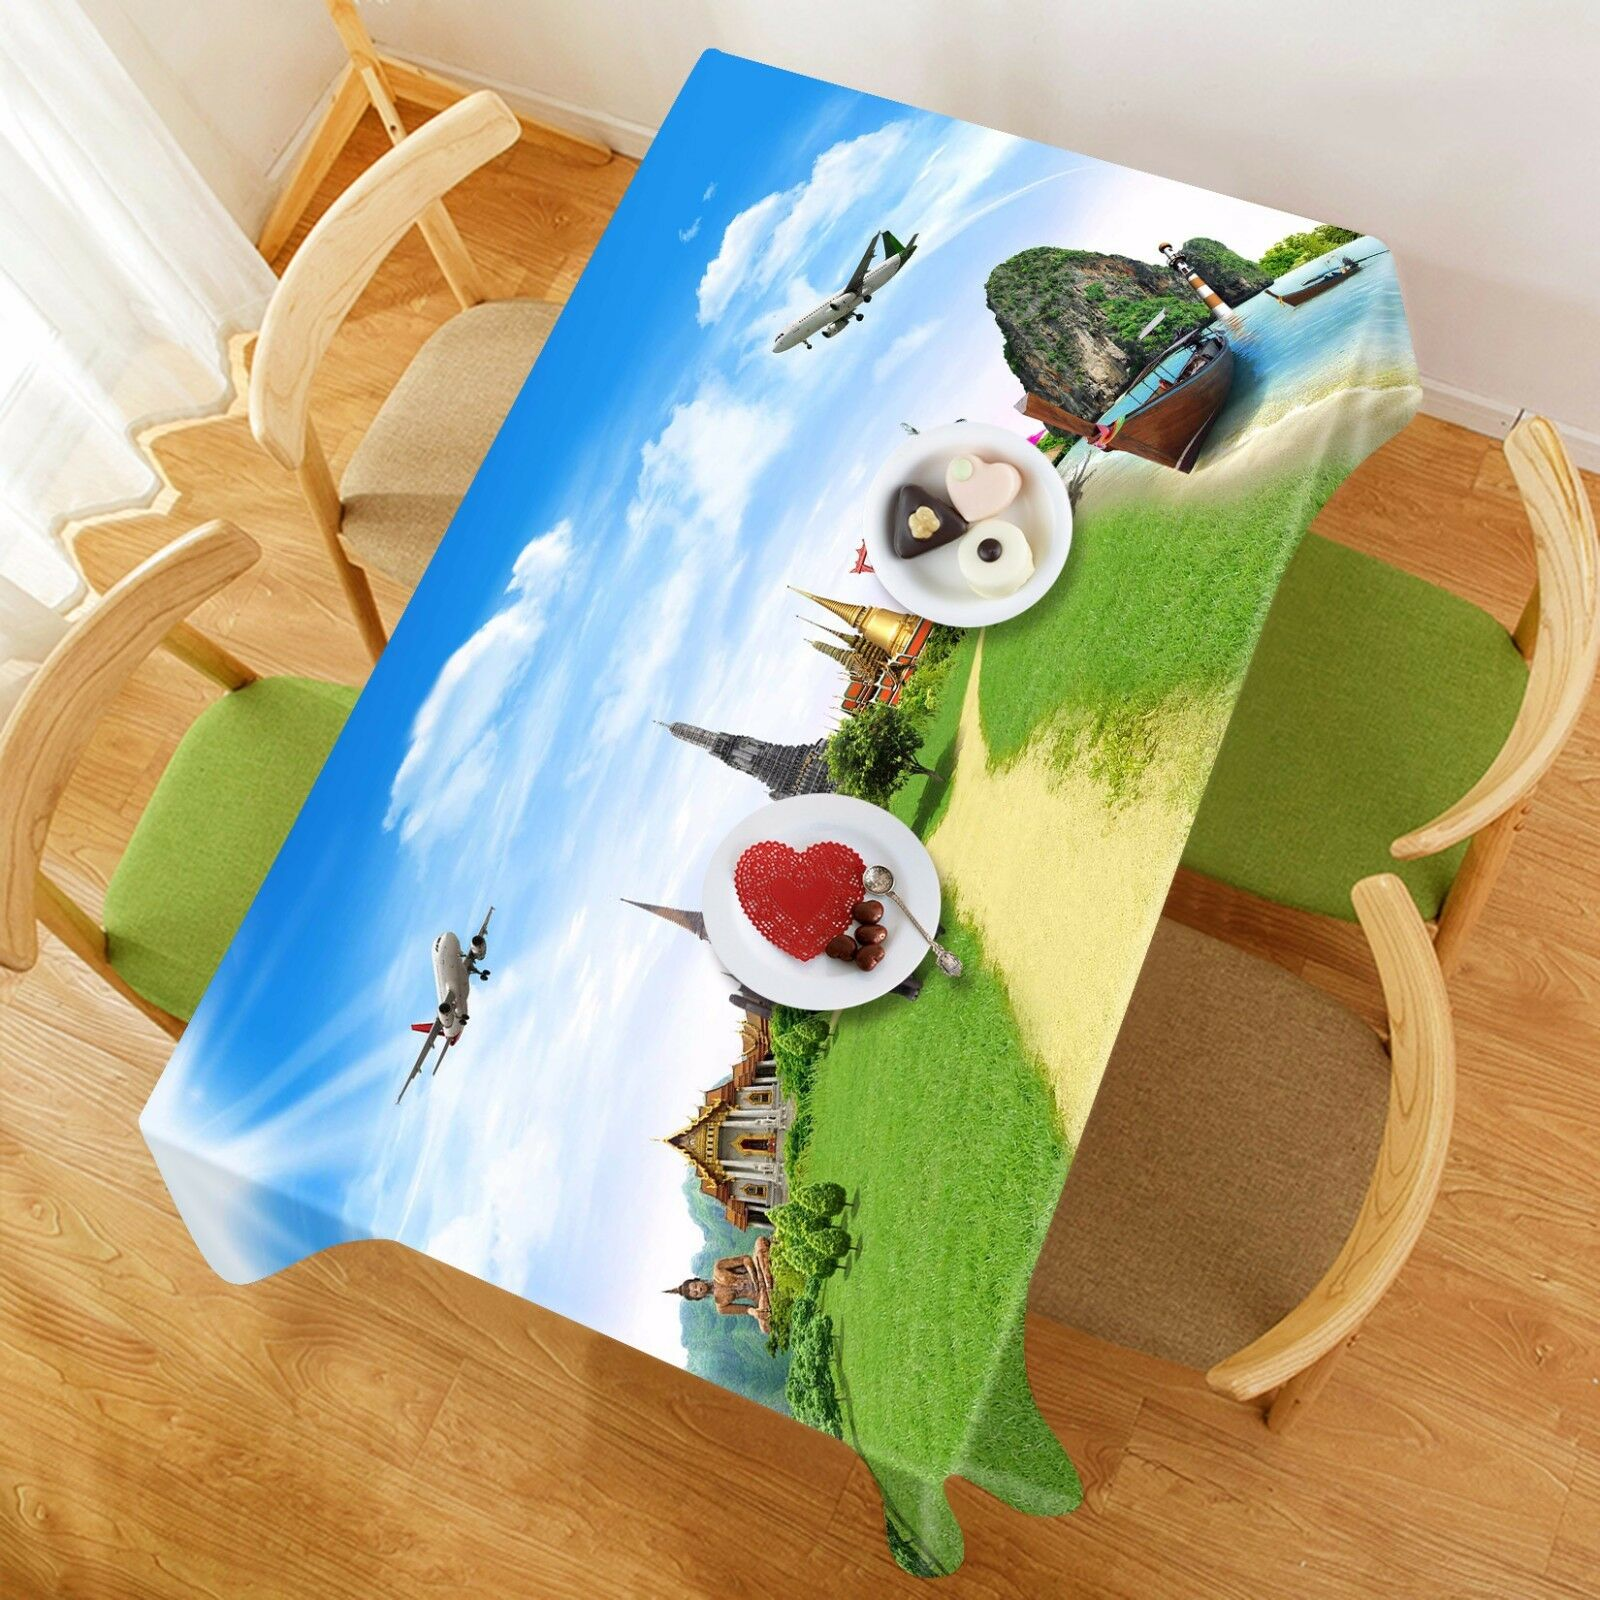 3D Earth 858 Tablecloth Table Cover Cloth Birthday Party Event AJ WALLPAPER AU